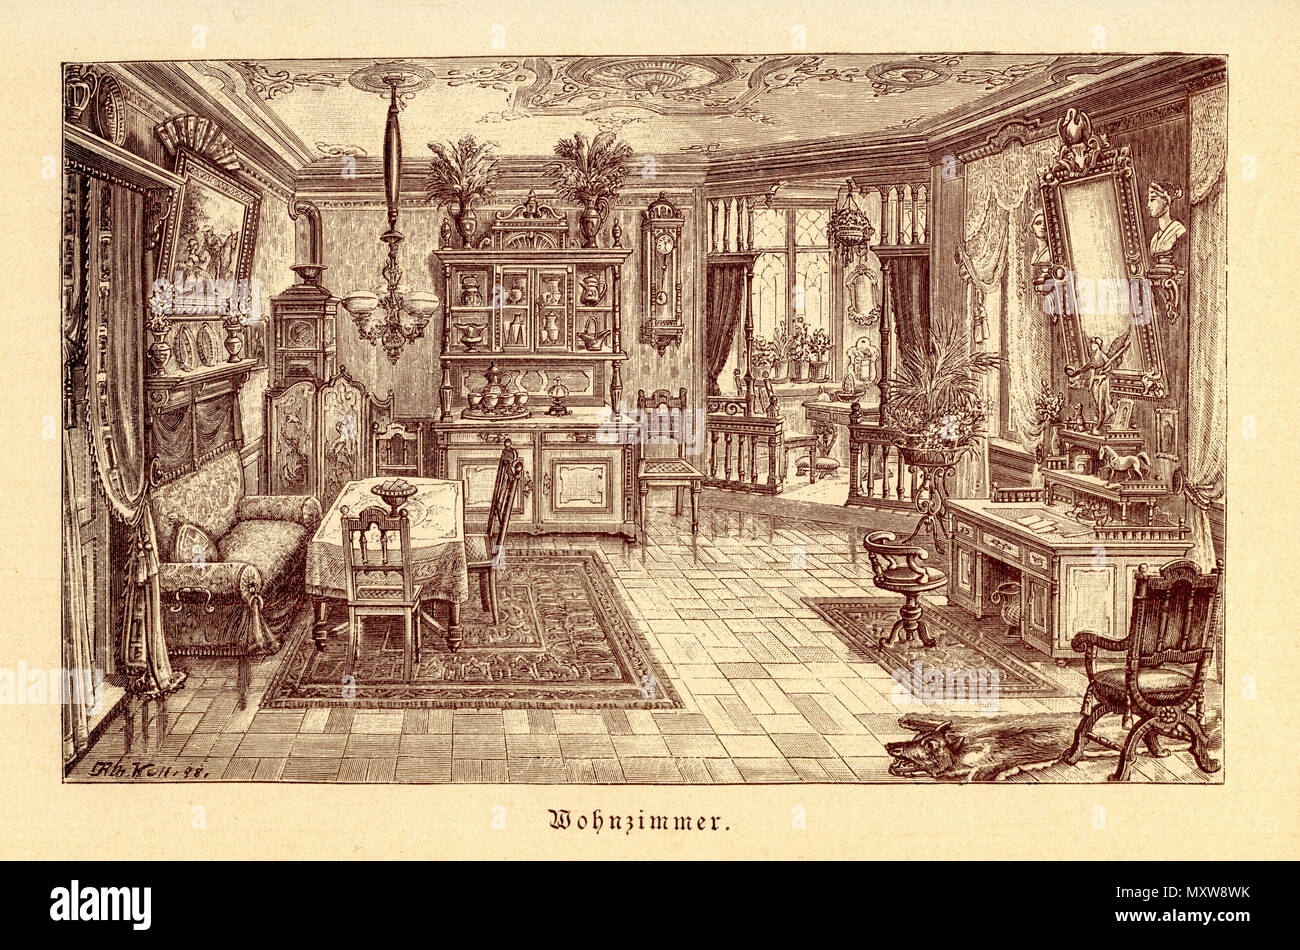 Common Living Room Of The 19th Century, 1900